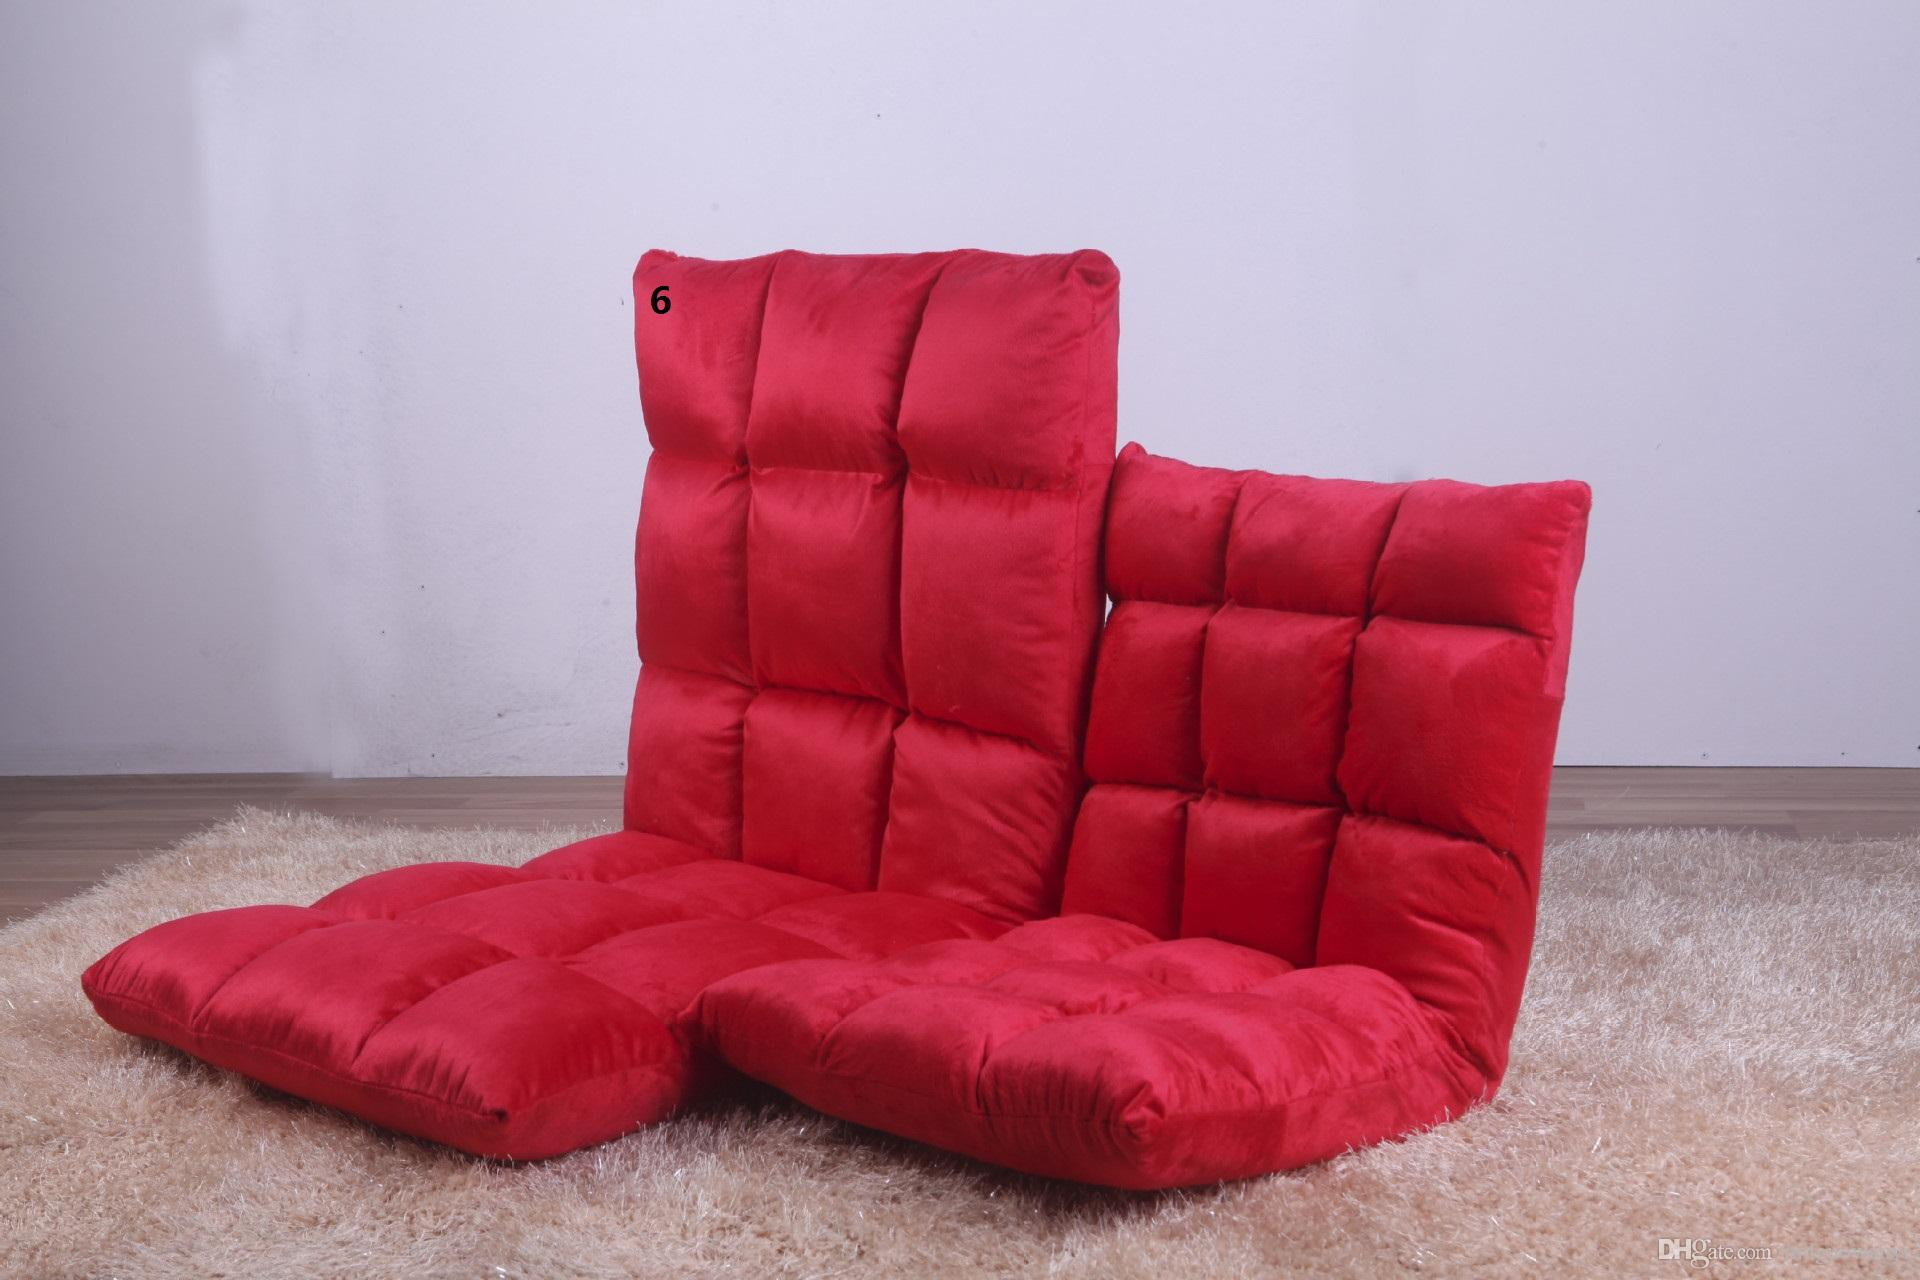 2019 6 Gears Lazy Sofa Couch Couch Rice Small Single Sofa Chair Folding Bed Floor Window On The Chair Fashion Mini Sofa From Wanyibao886 107 54